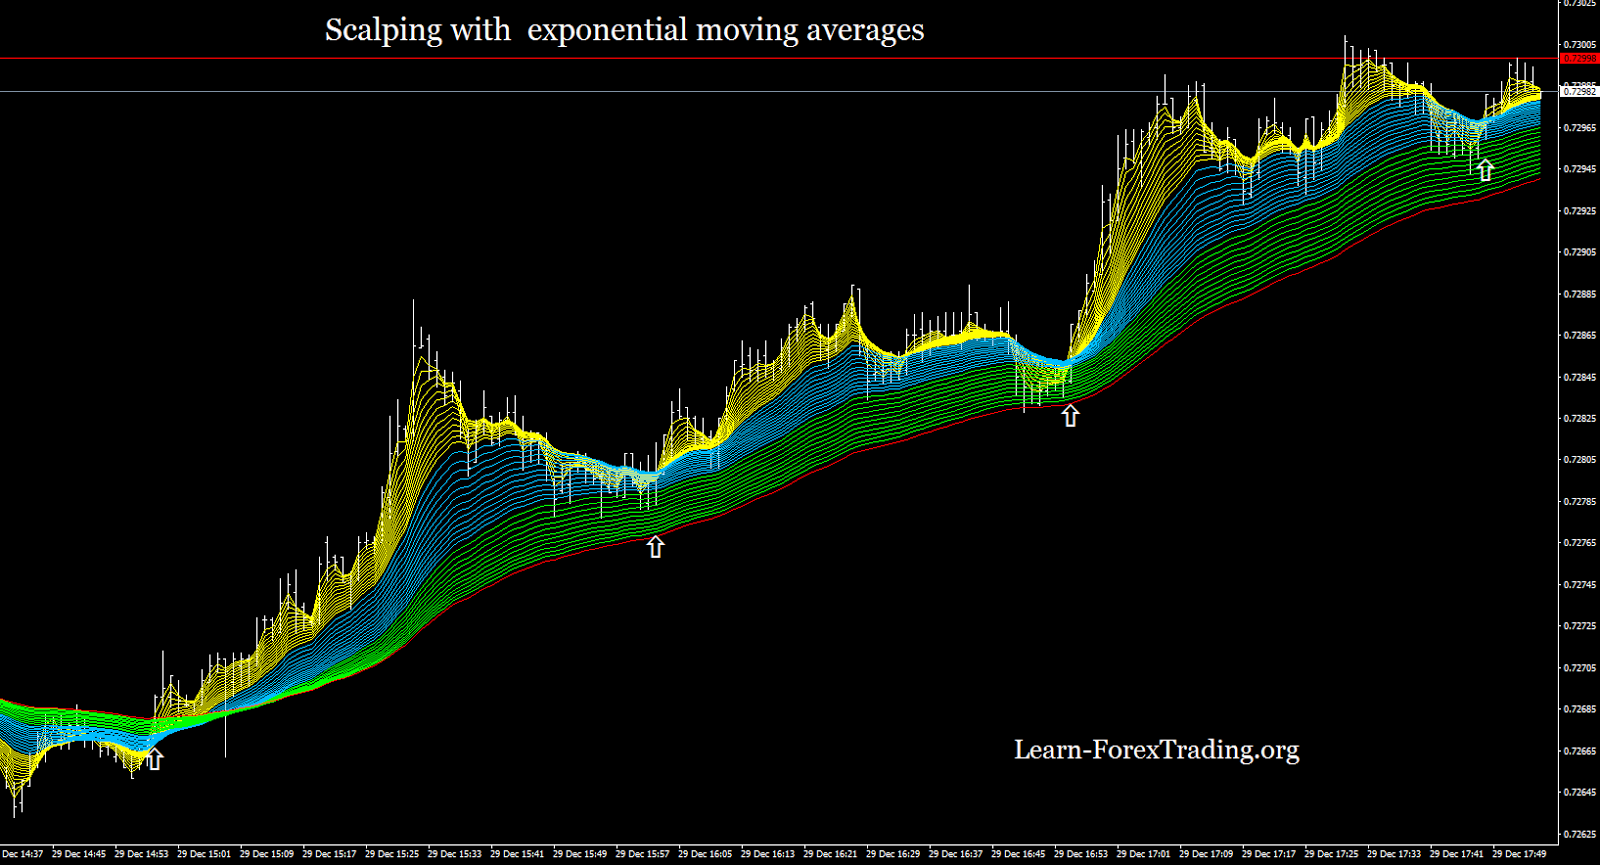 Exponential moving average forex strategy